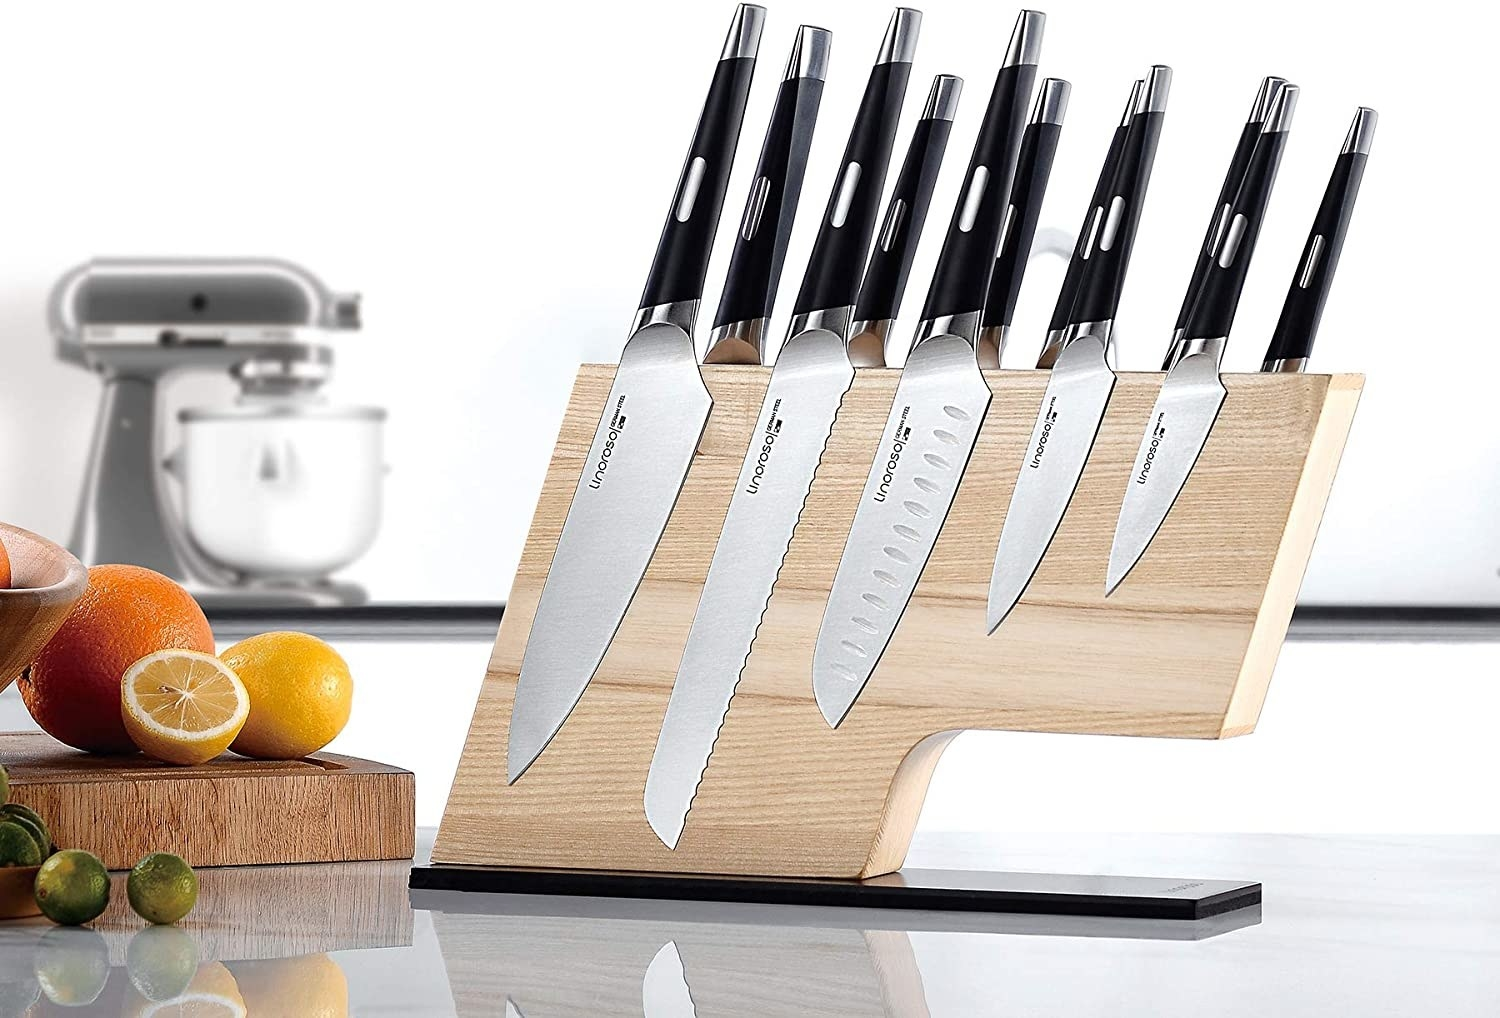 l-shaped wooden board with knives stuck to it